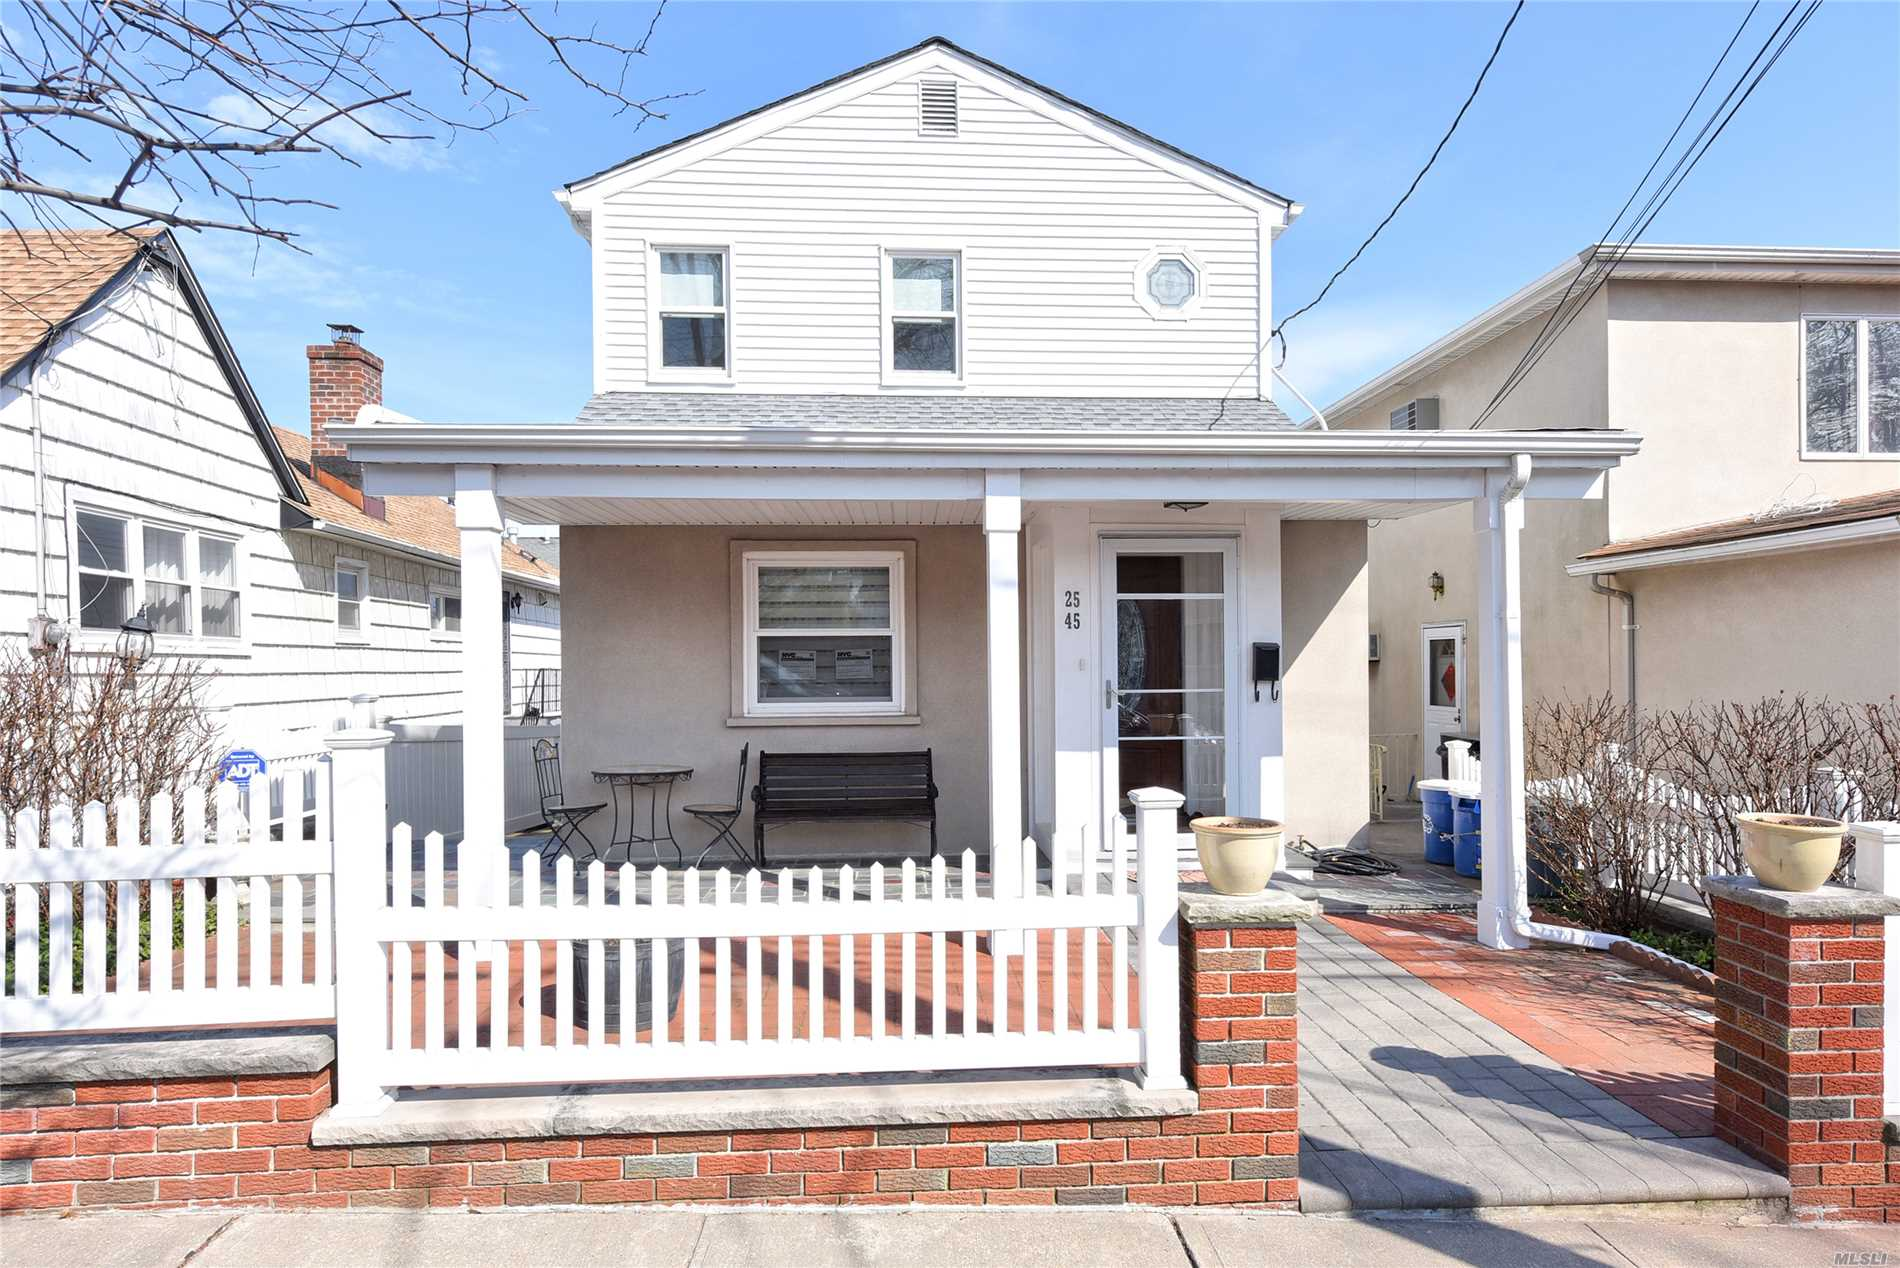 Spring Brings This Wondrous Colonial Home Full Of Charm With An Impressive Layout. 3 Bedrooms With 2 Full Baths, Living, Dining, Eat In Kitchen (Gas Cooking), Sunny Den, Huge Finished Basement And Other Extras.